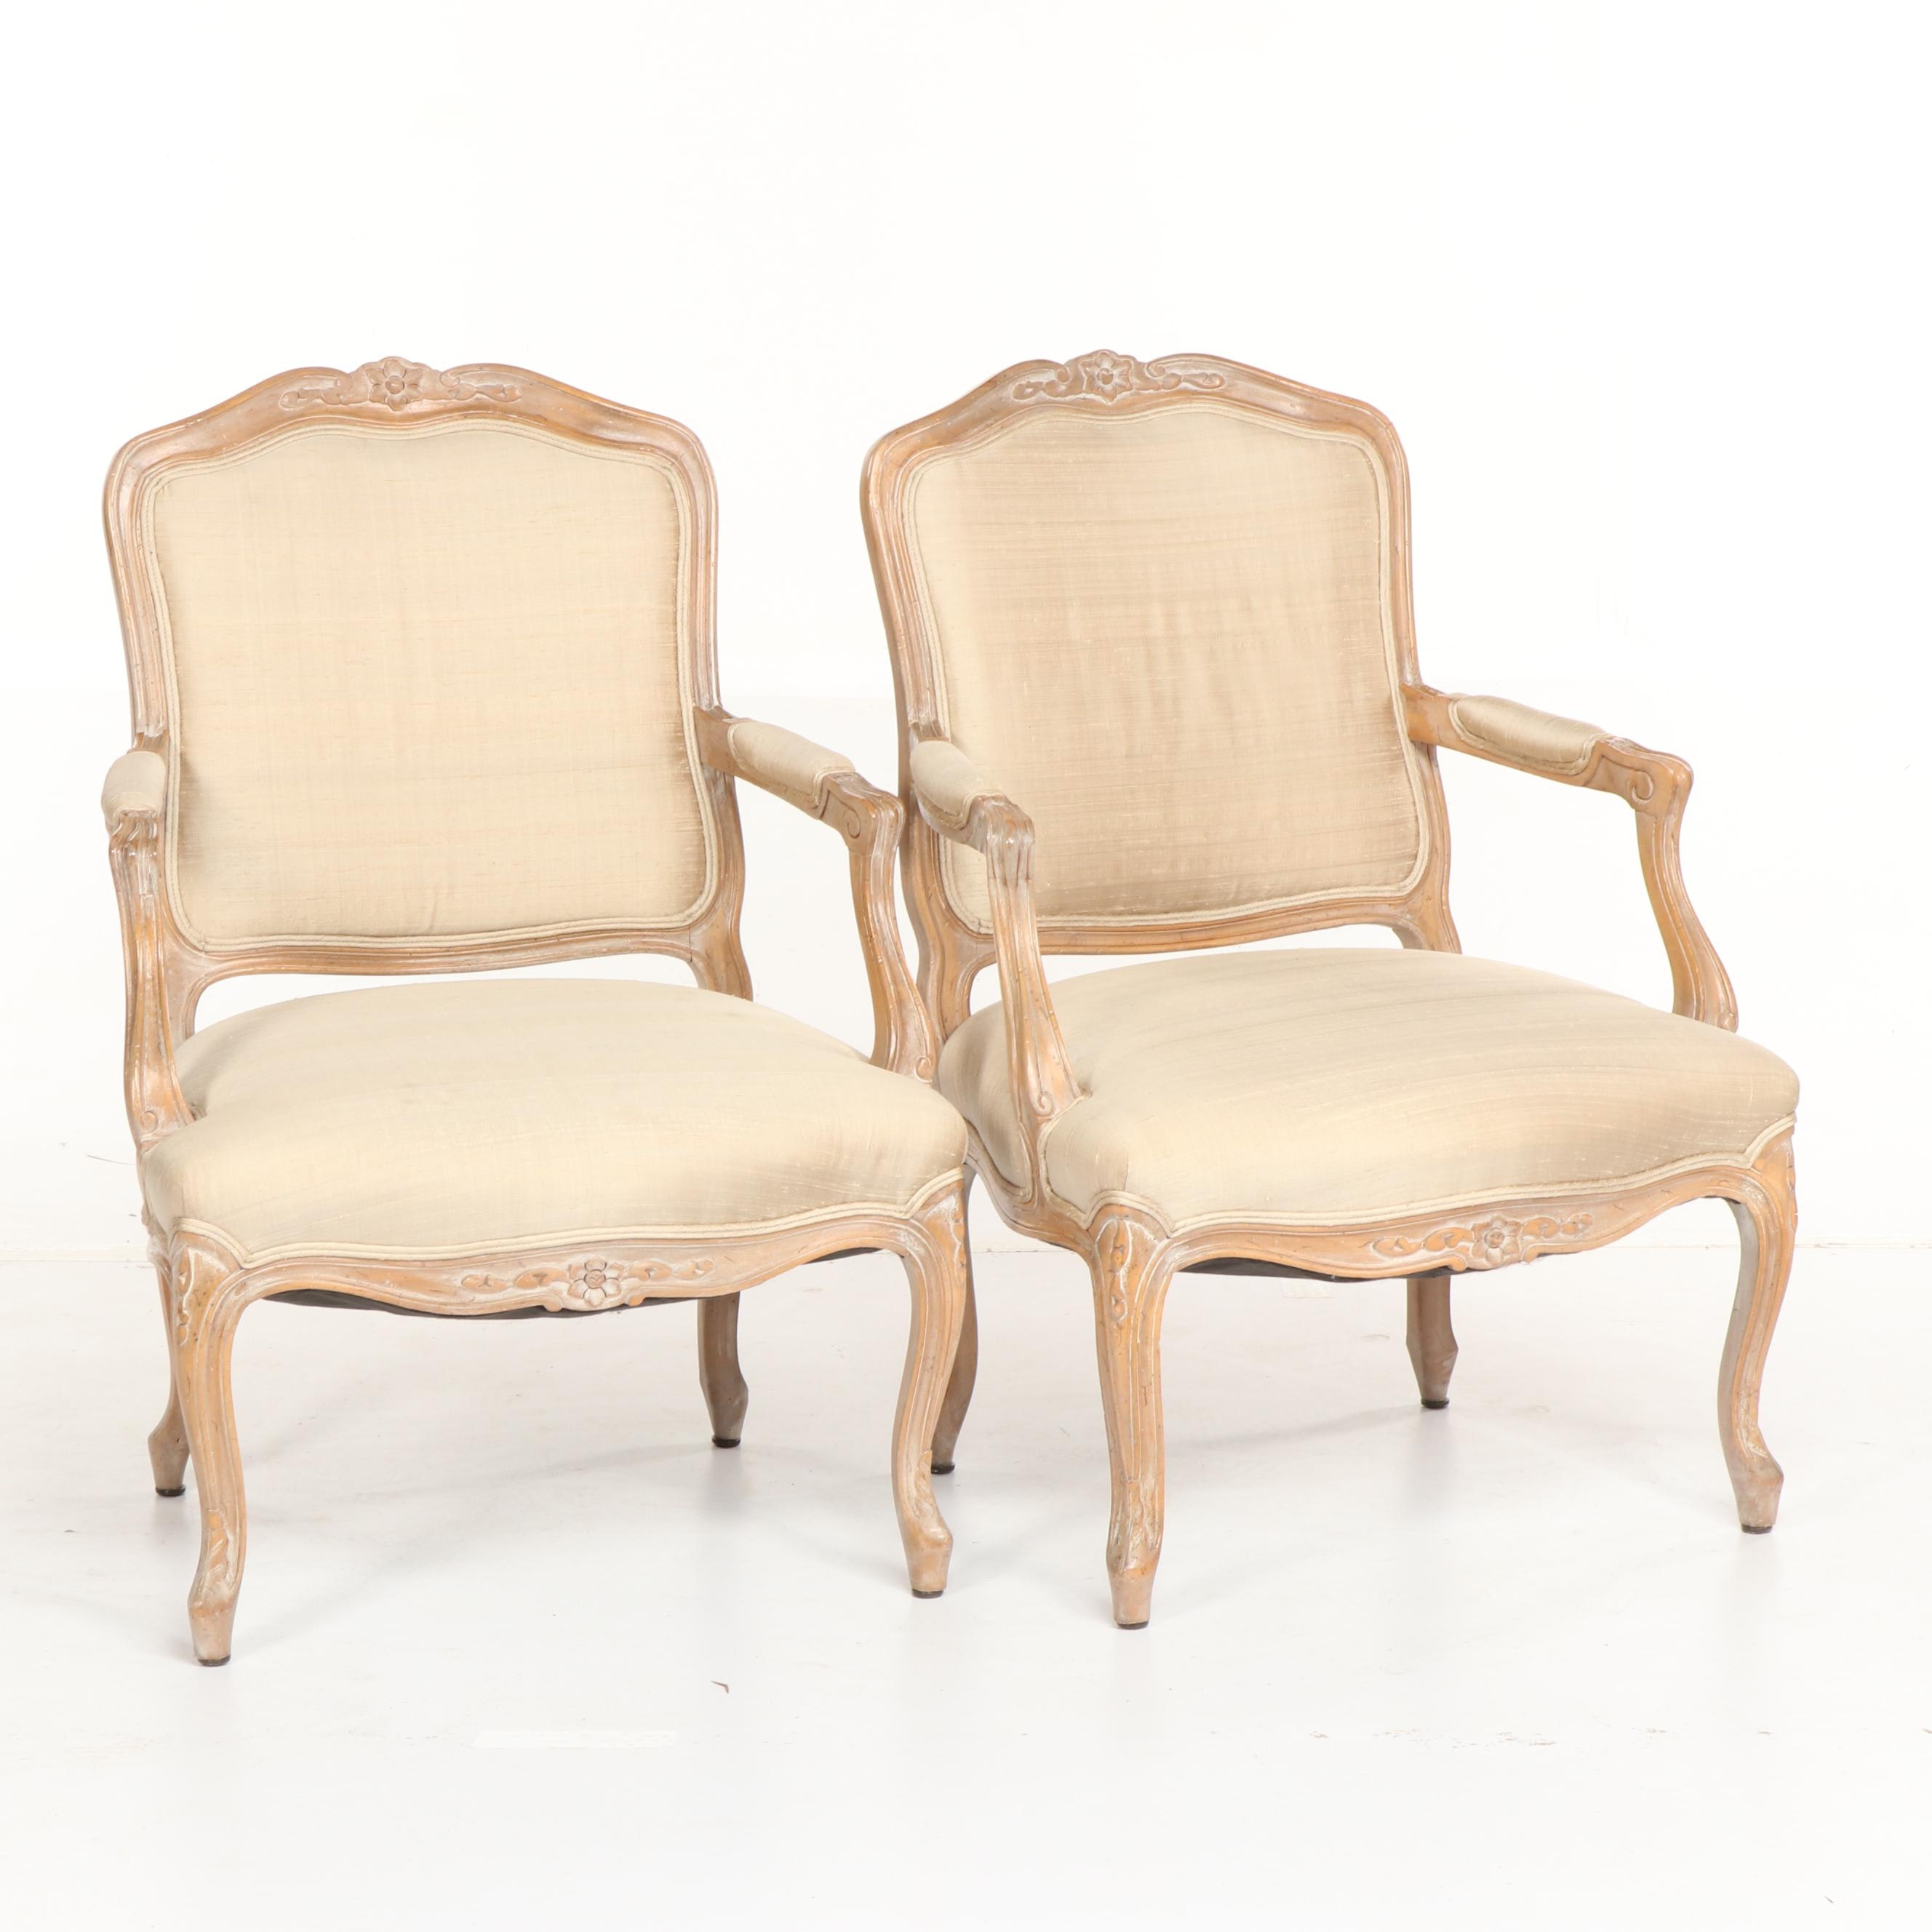 French Provincial Style Silk Upholstered Armchairs, Late 20th Century